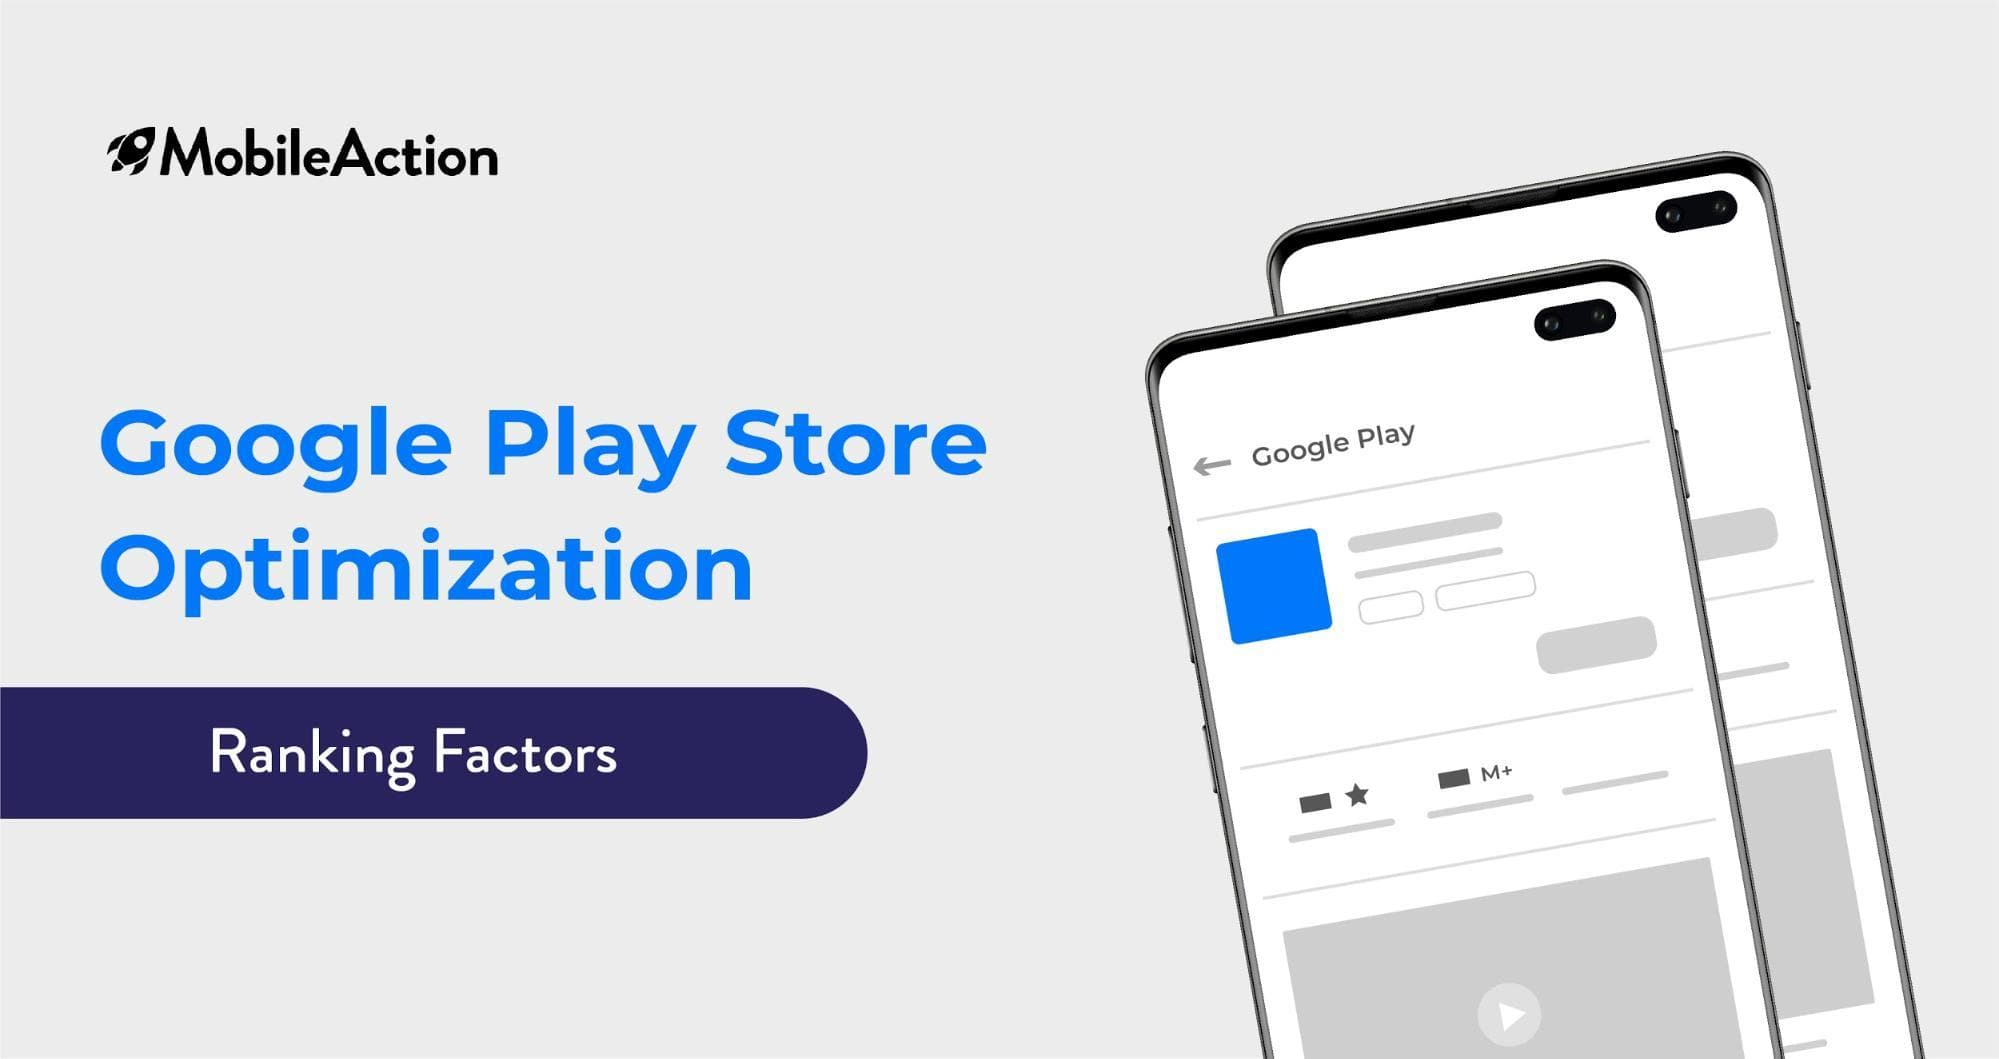 Google Play Store App Store Optimization Ranking Factors